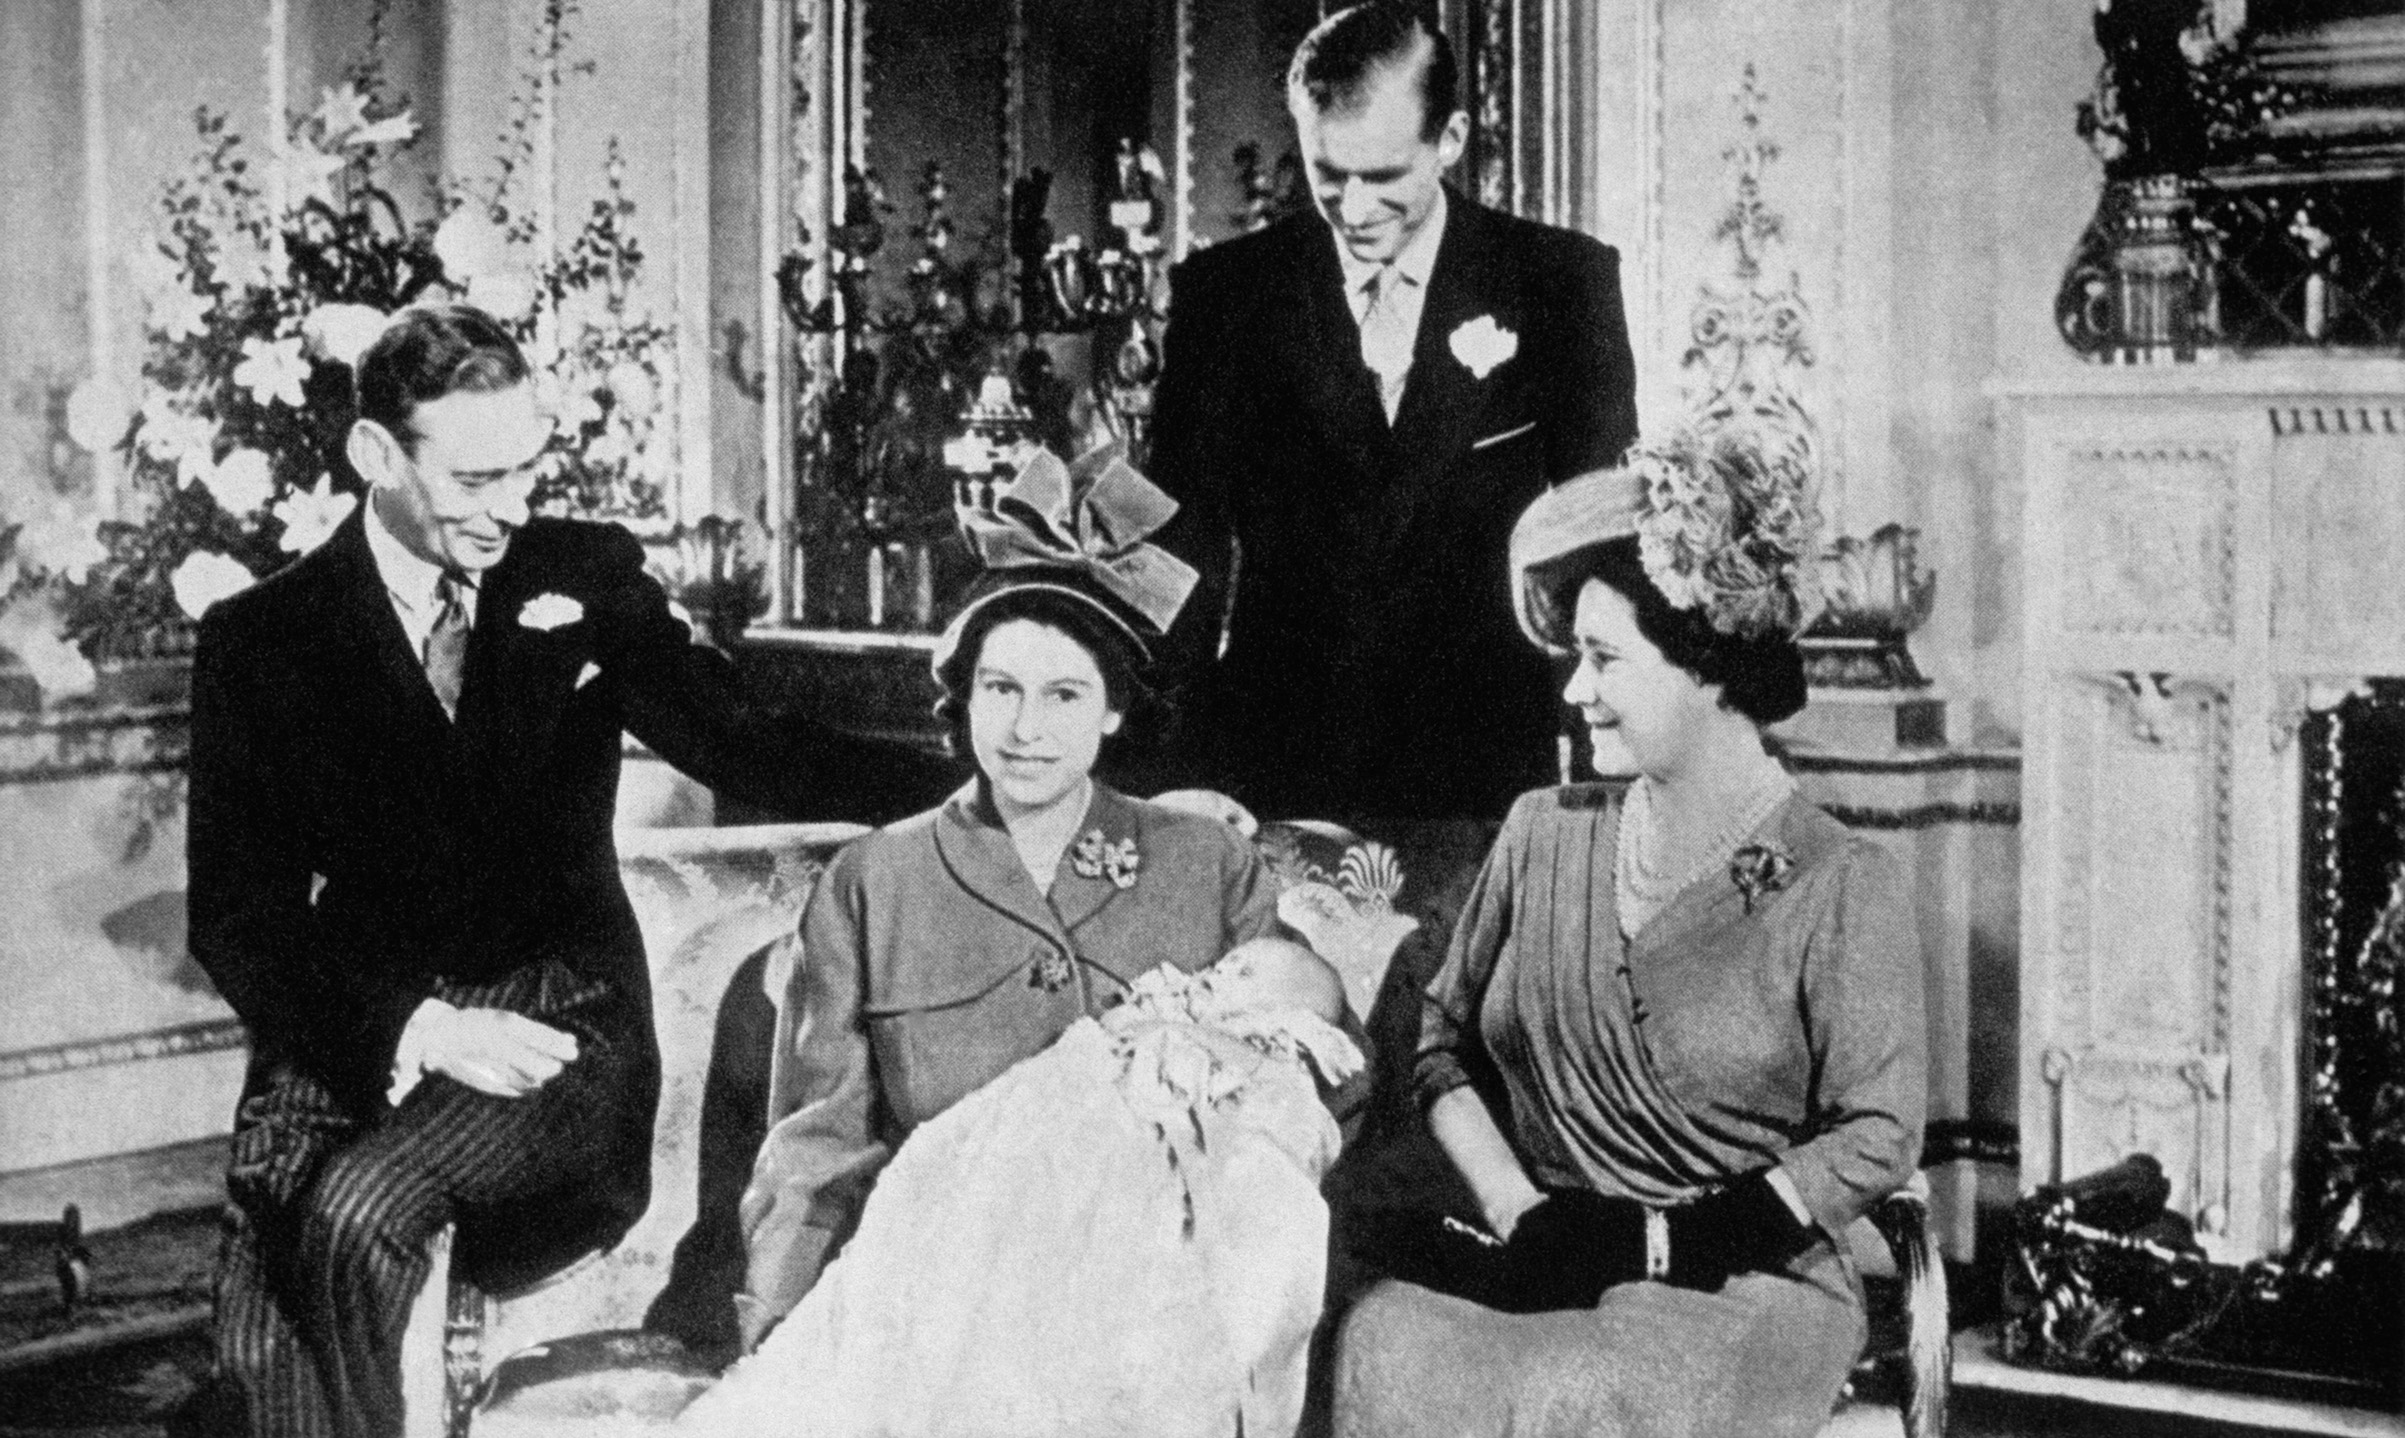 King George VI and his wife Queen Elizabeth, the Princess Elizabeth — the future Queen Elizabeth II — with the Duke of Edinborough and the infant Prince Charles.